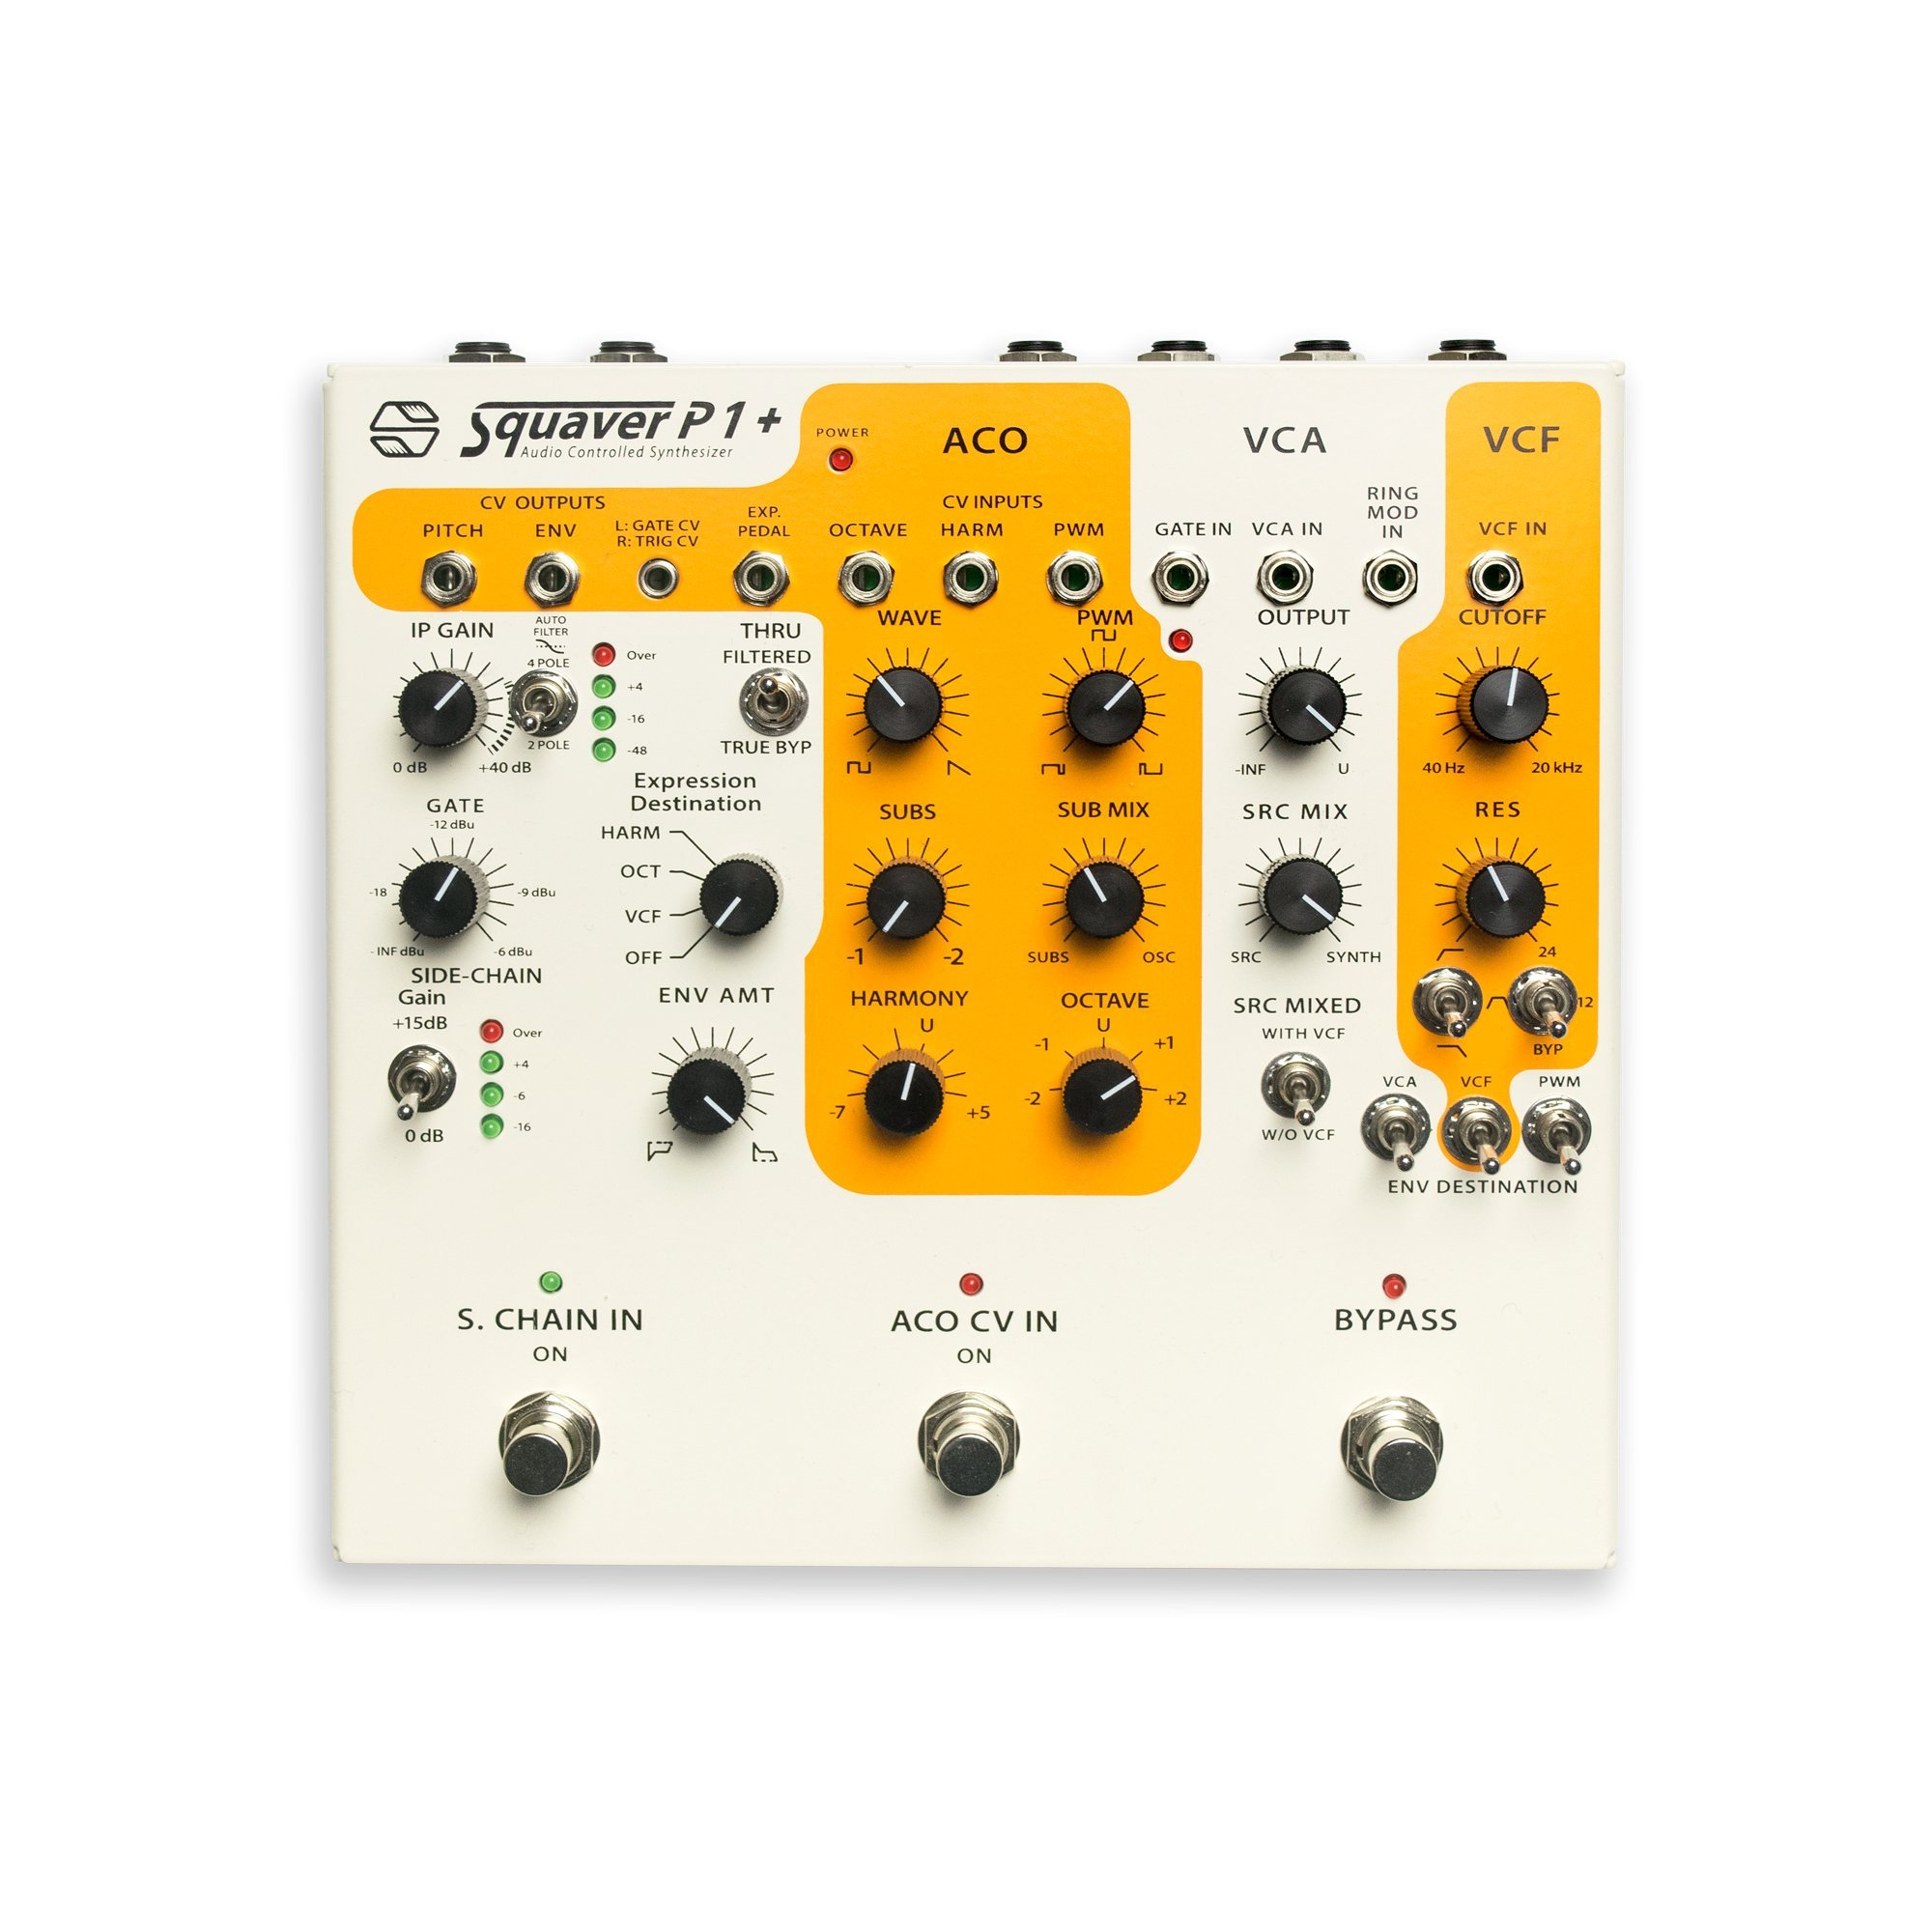 Squaver P1+ : Semi-Modulor Analog Audio-Controlled Synthesizer Pedal by Sonicsmith